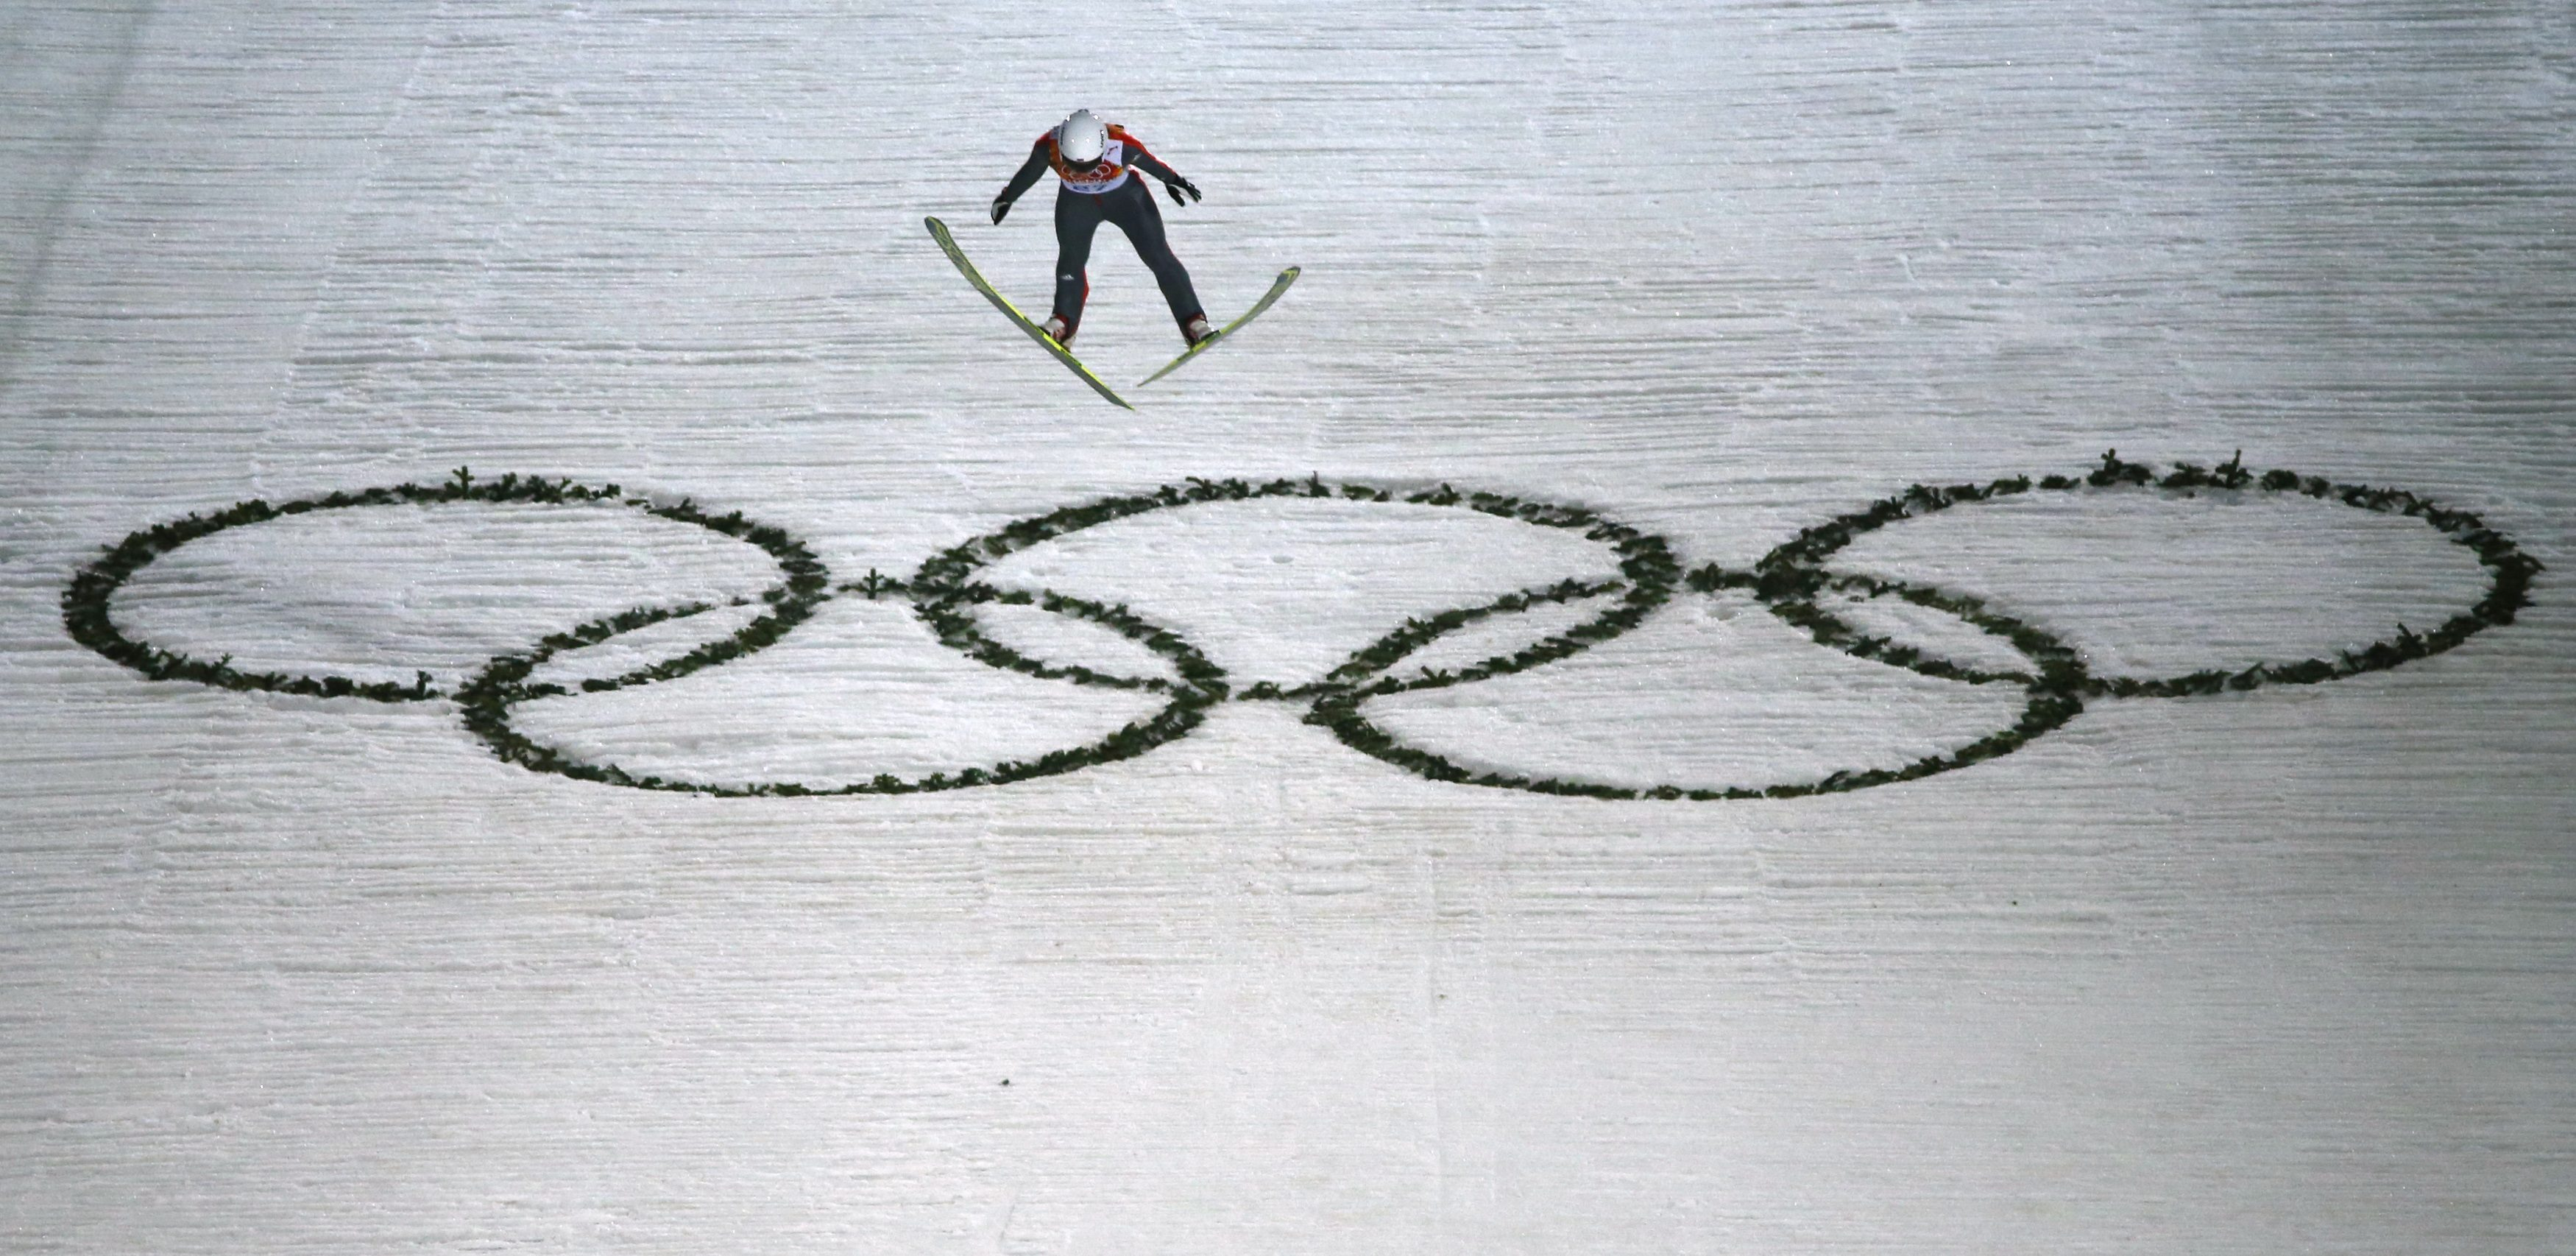 Russia's Irina Avvakumova soars through the air in the final round of the women's ski jumping individual normal hill event at the Sochi 2014 Winter Olympic Games, at the RusSki Gorki Jumping Centre, in Rosa Khutor.